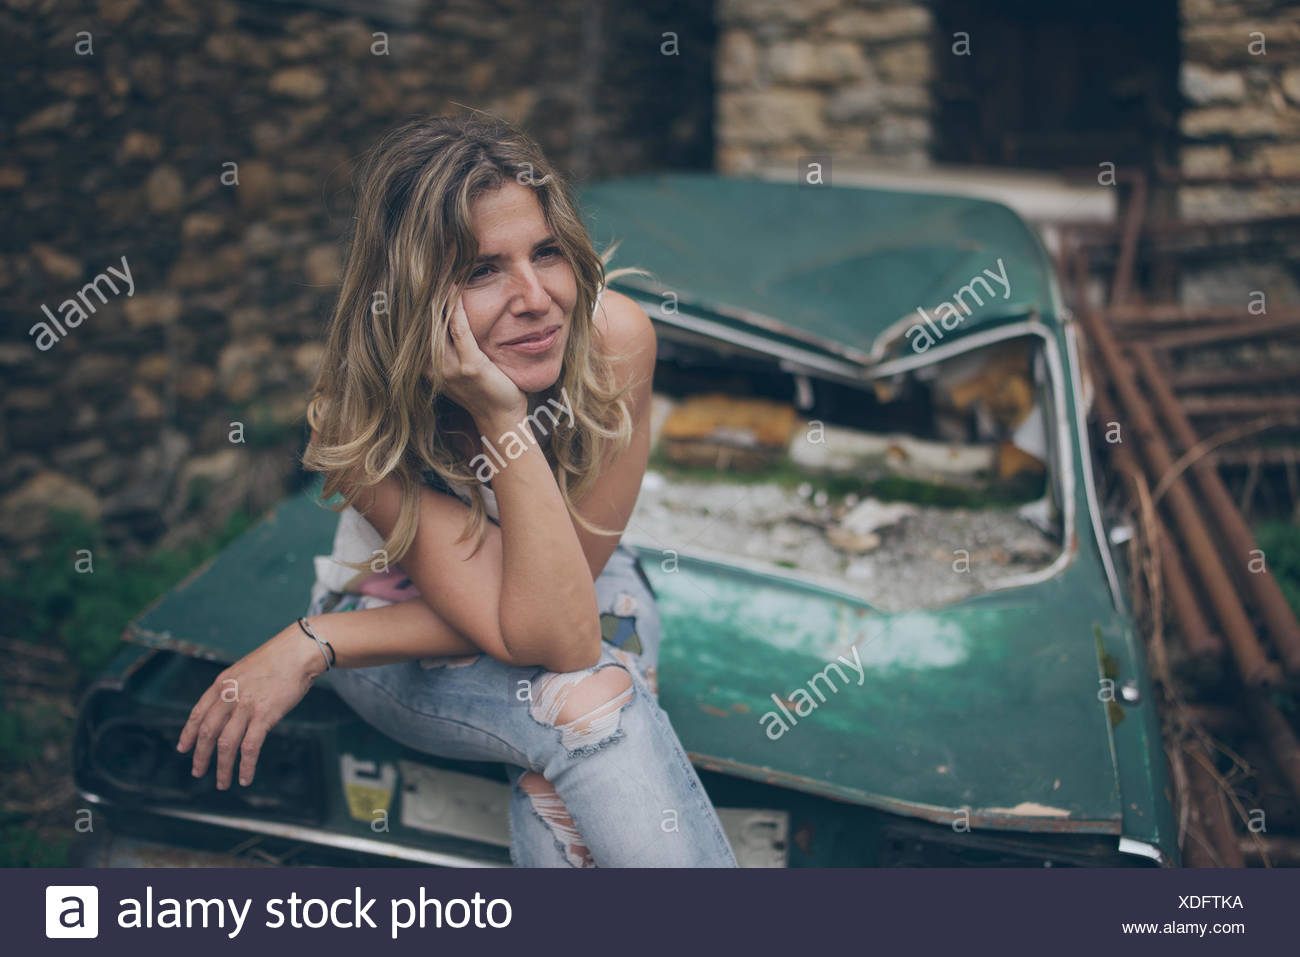 Young Woman Looking Away While Sitting On Abandoned Car - Stock Image